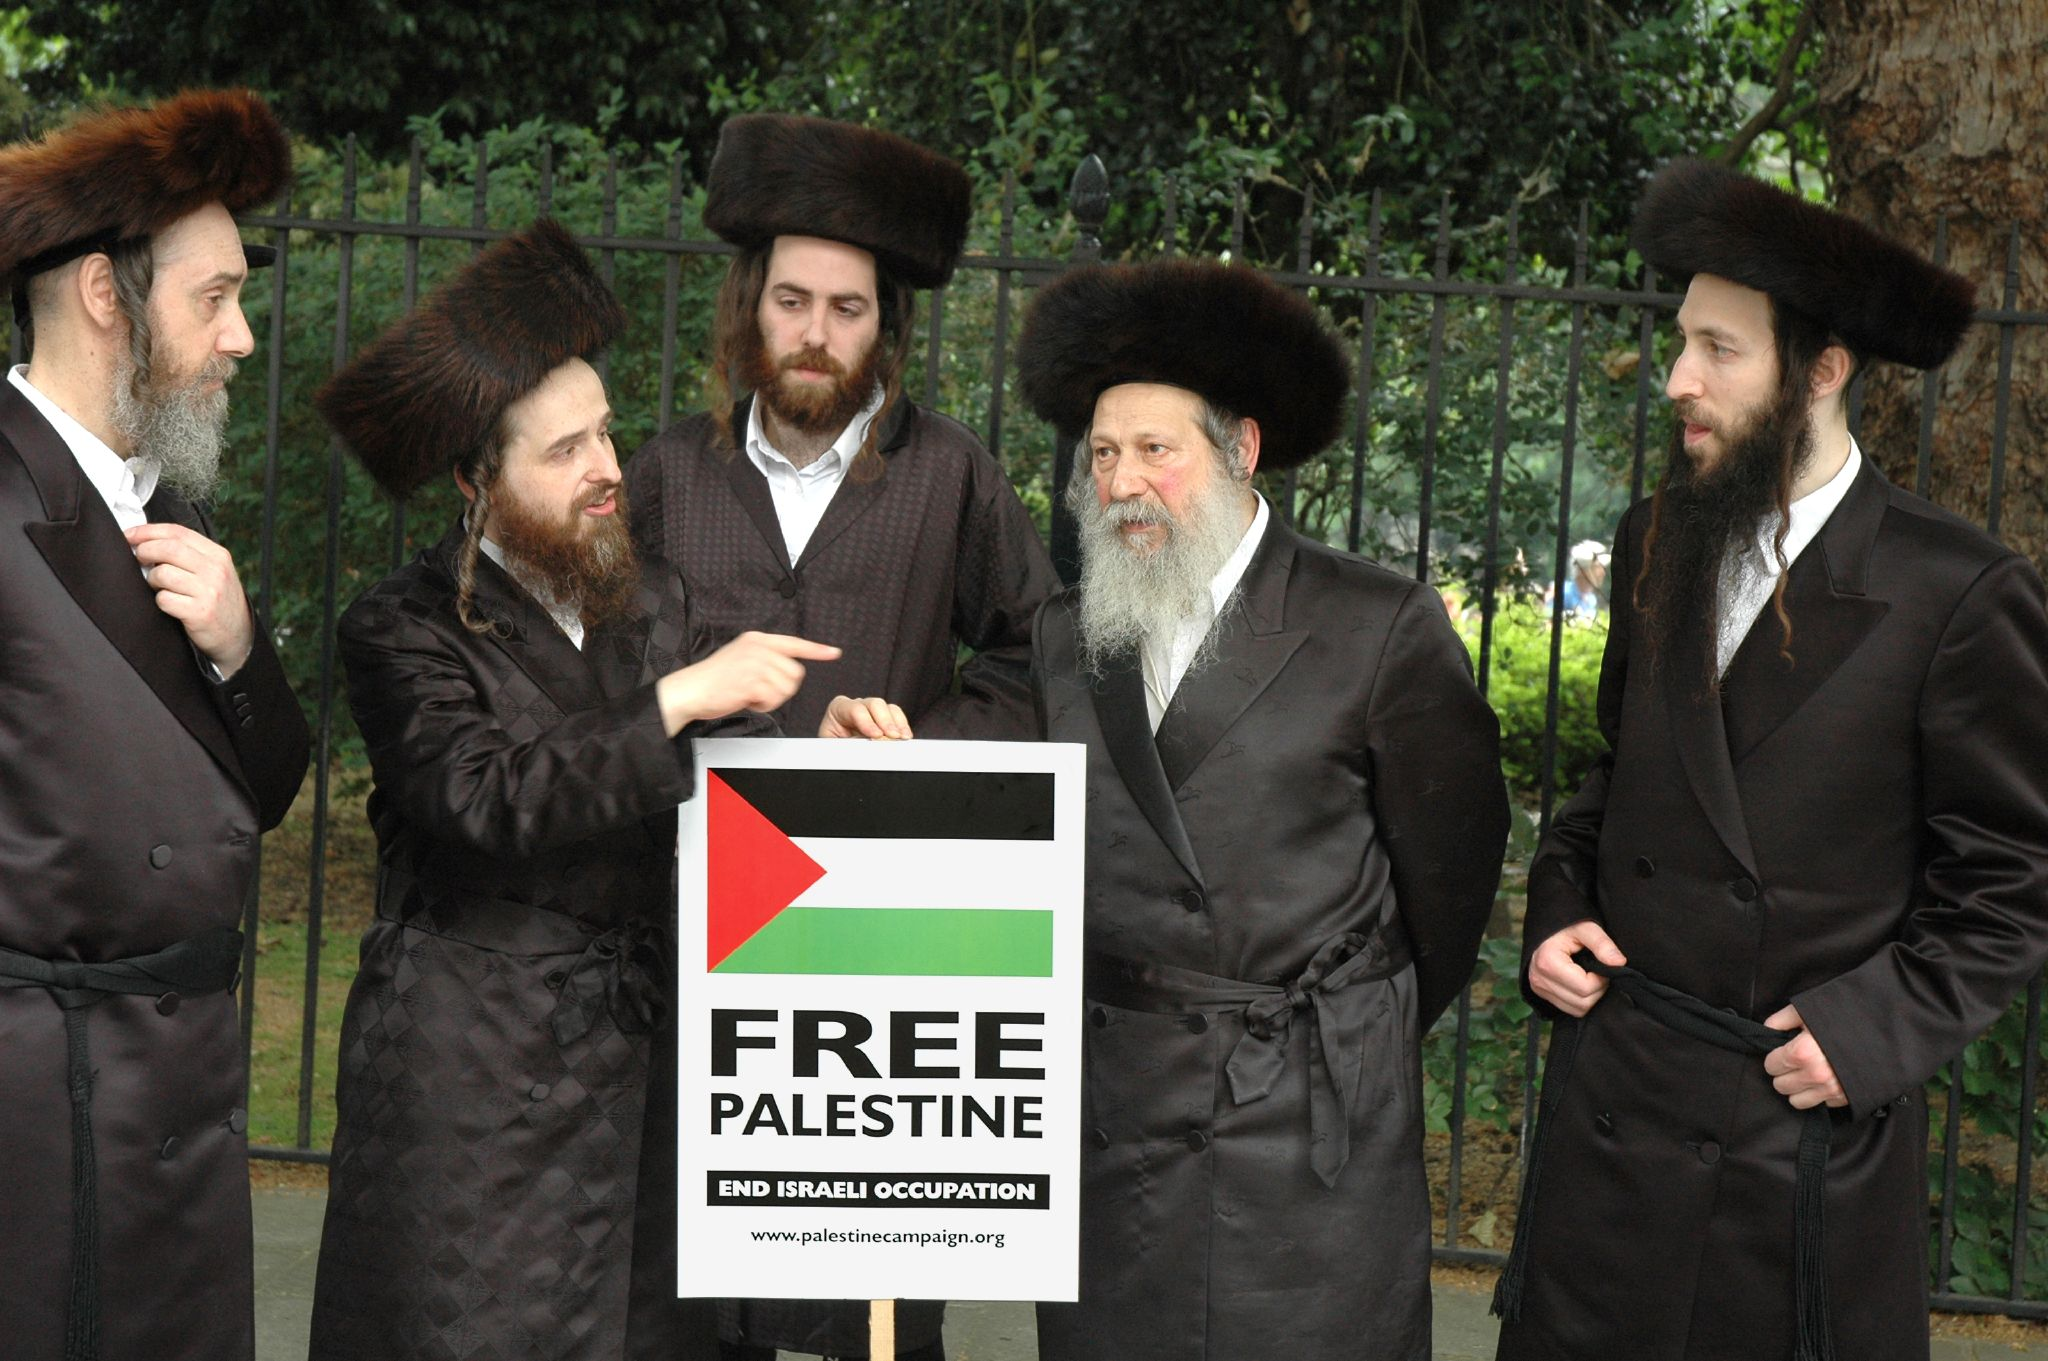 Members_of_Neturei_Karta_Orthodox_Jewish